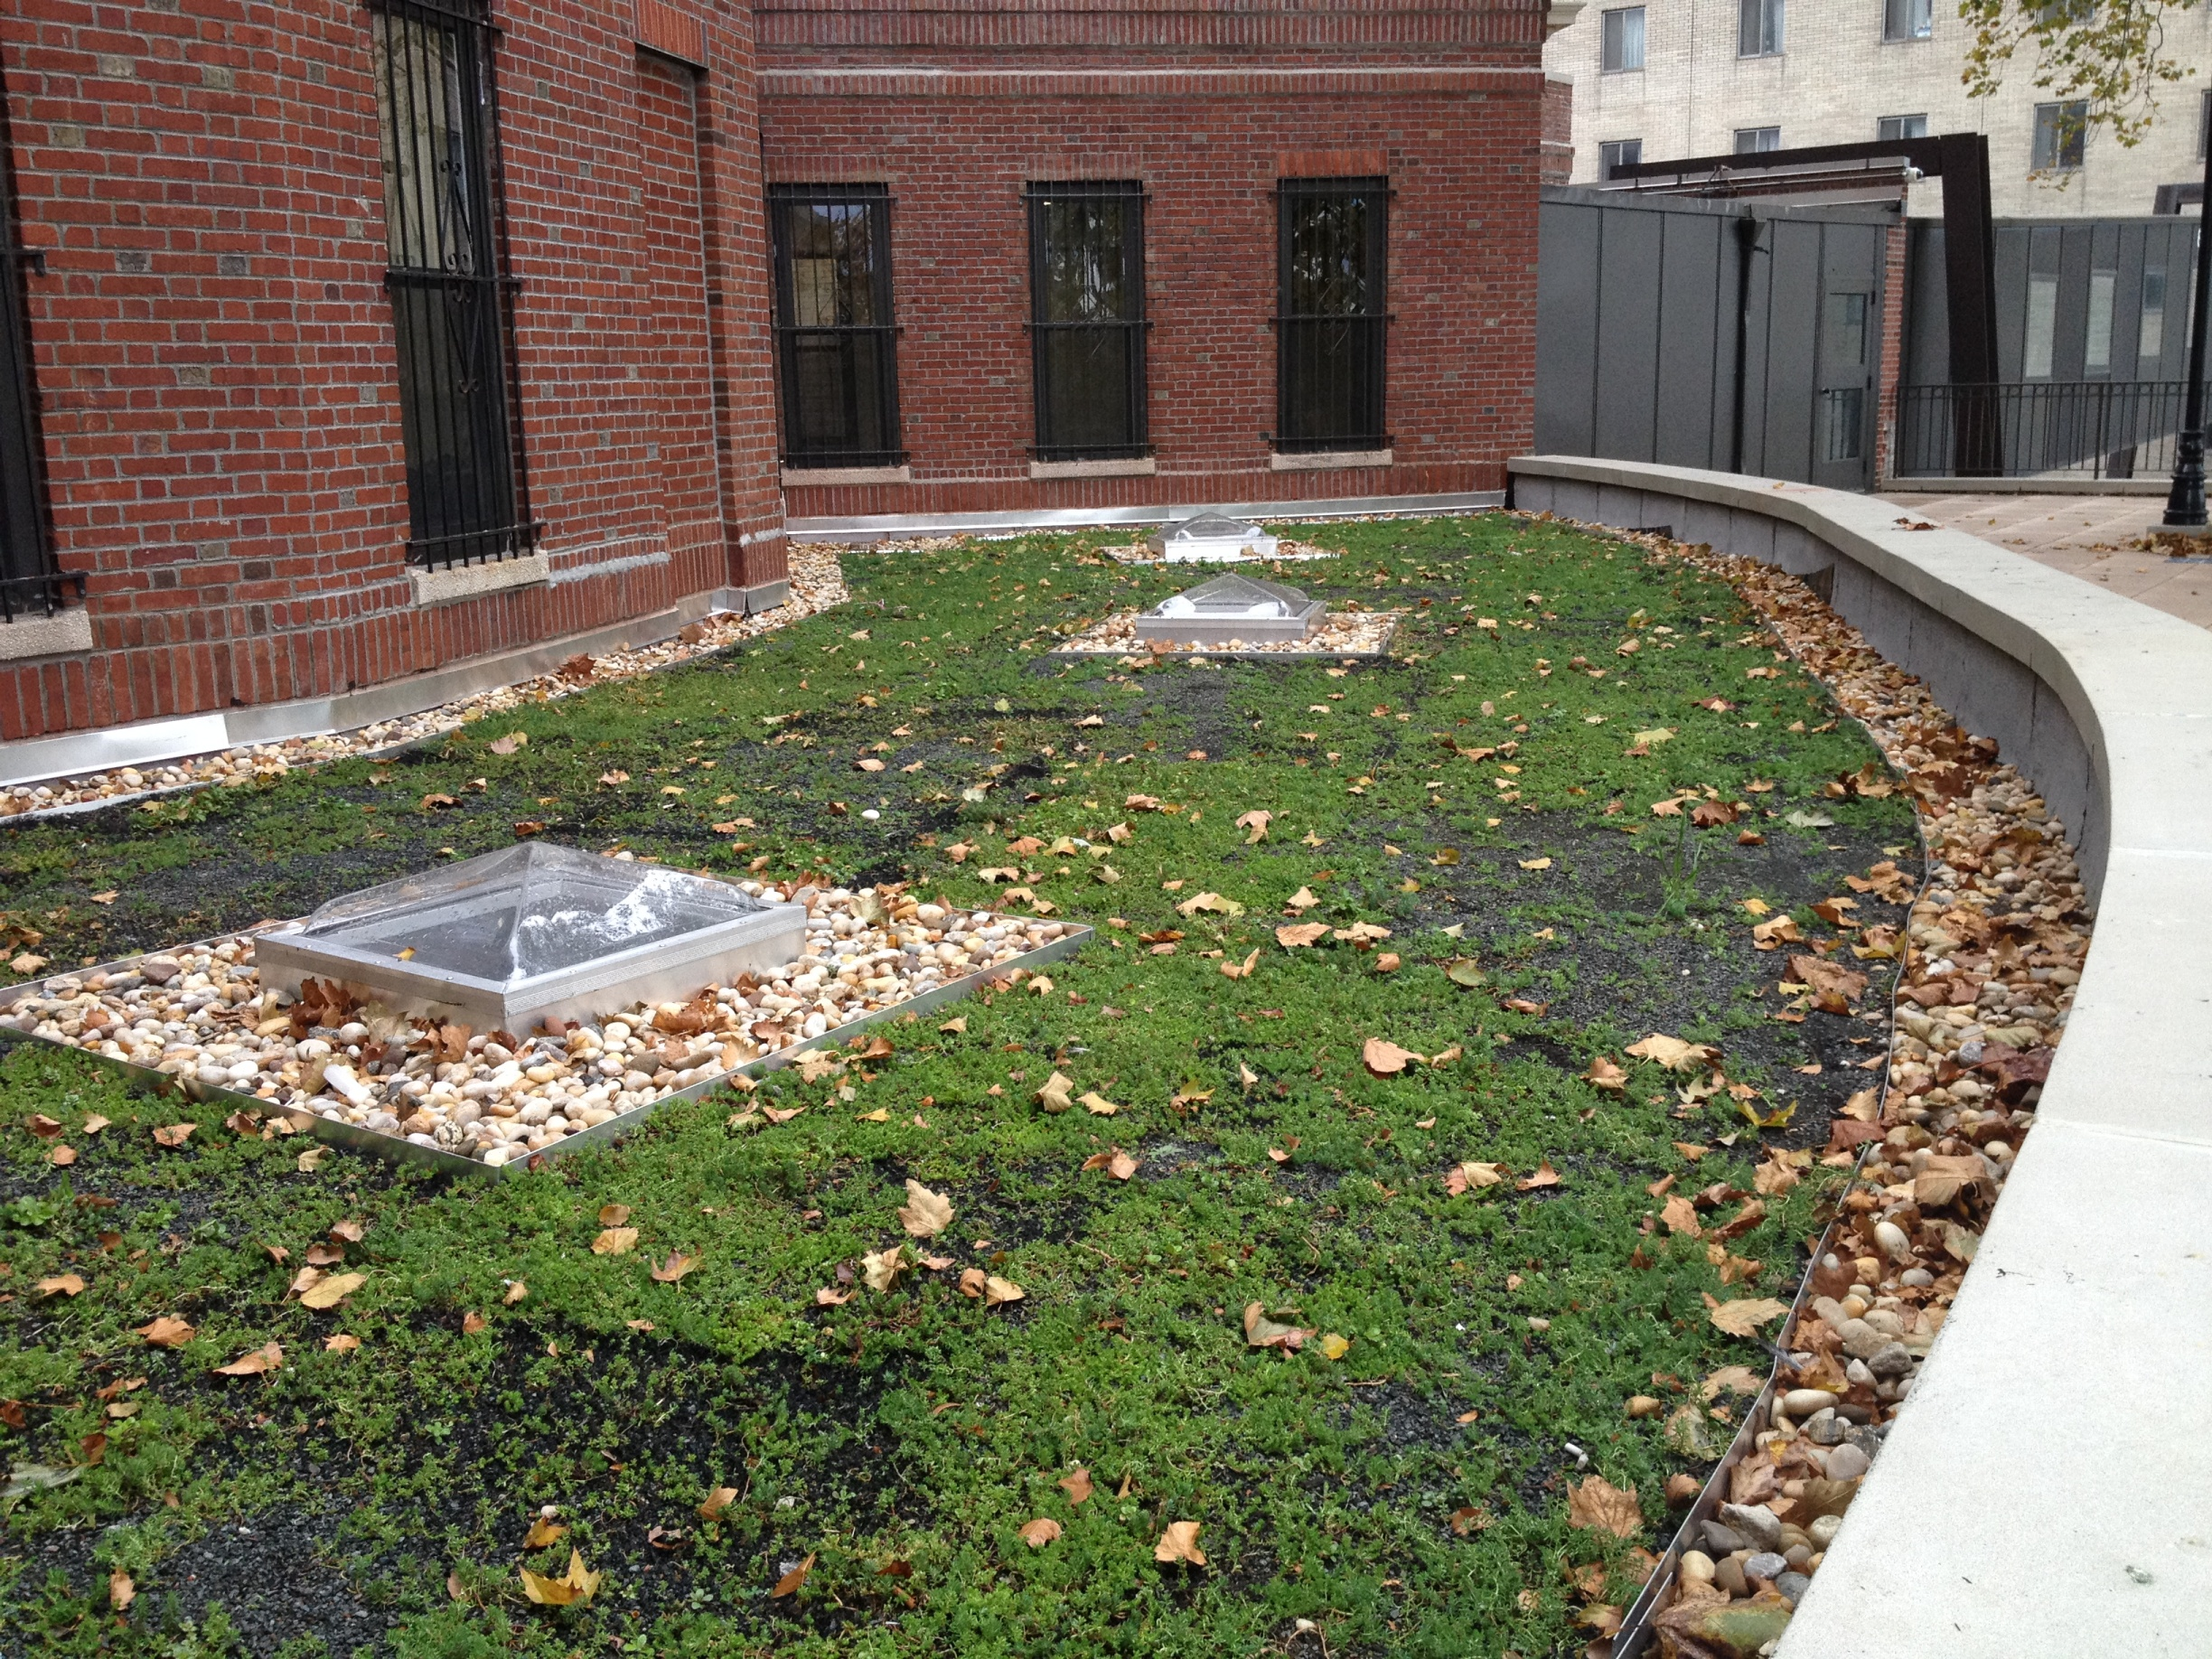 Xero Flor Green Roof System From Xero Flor America